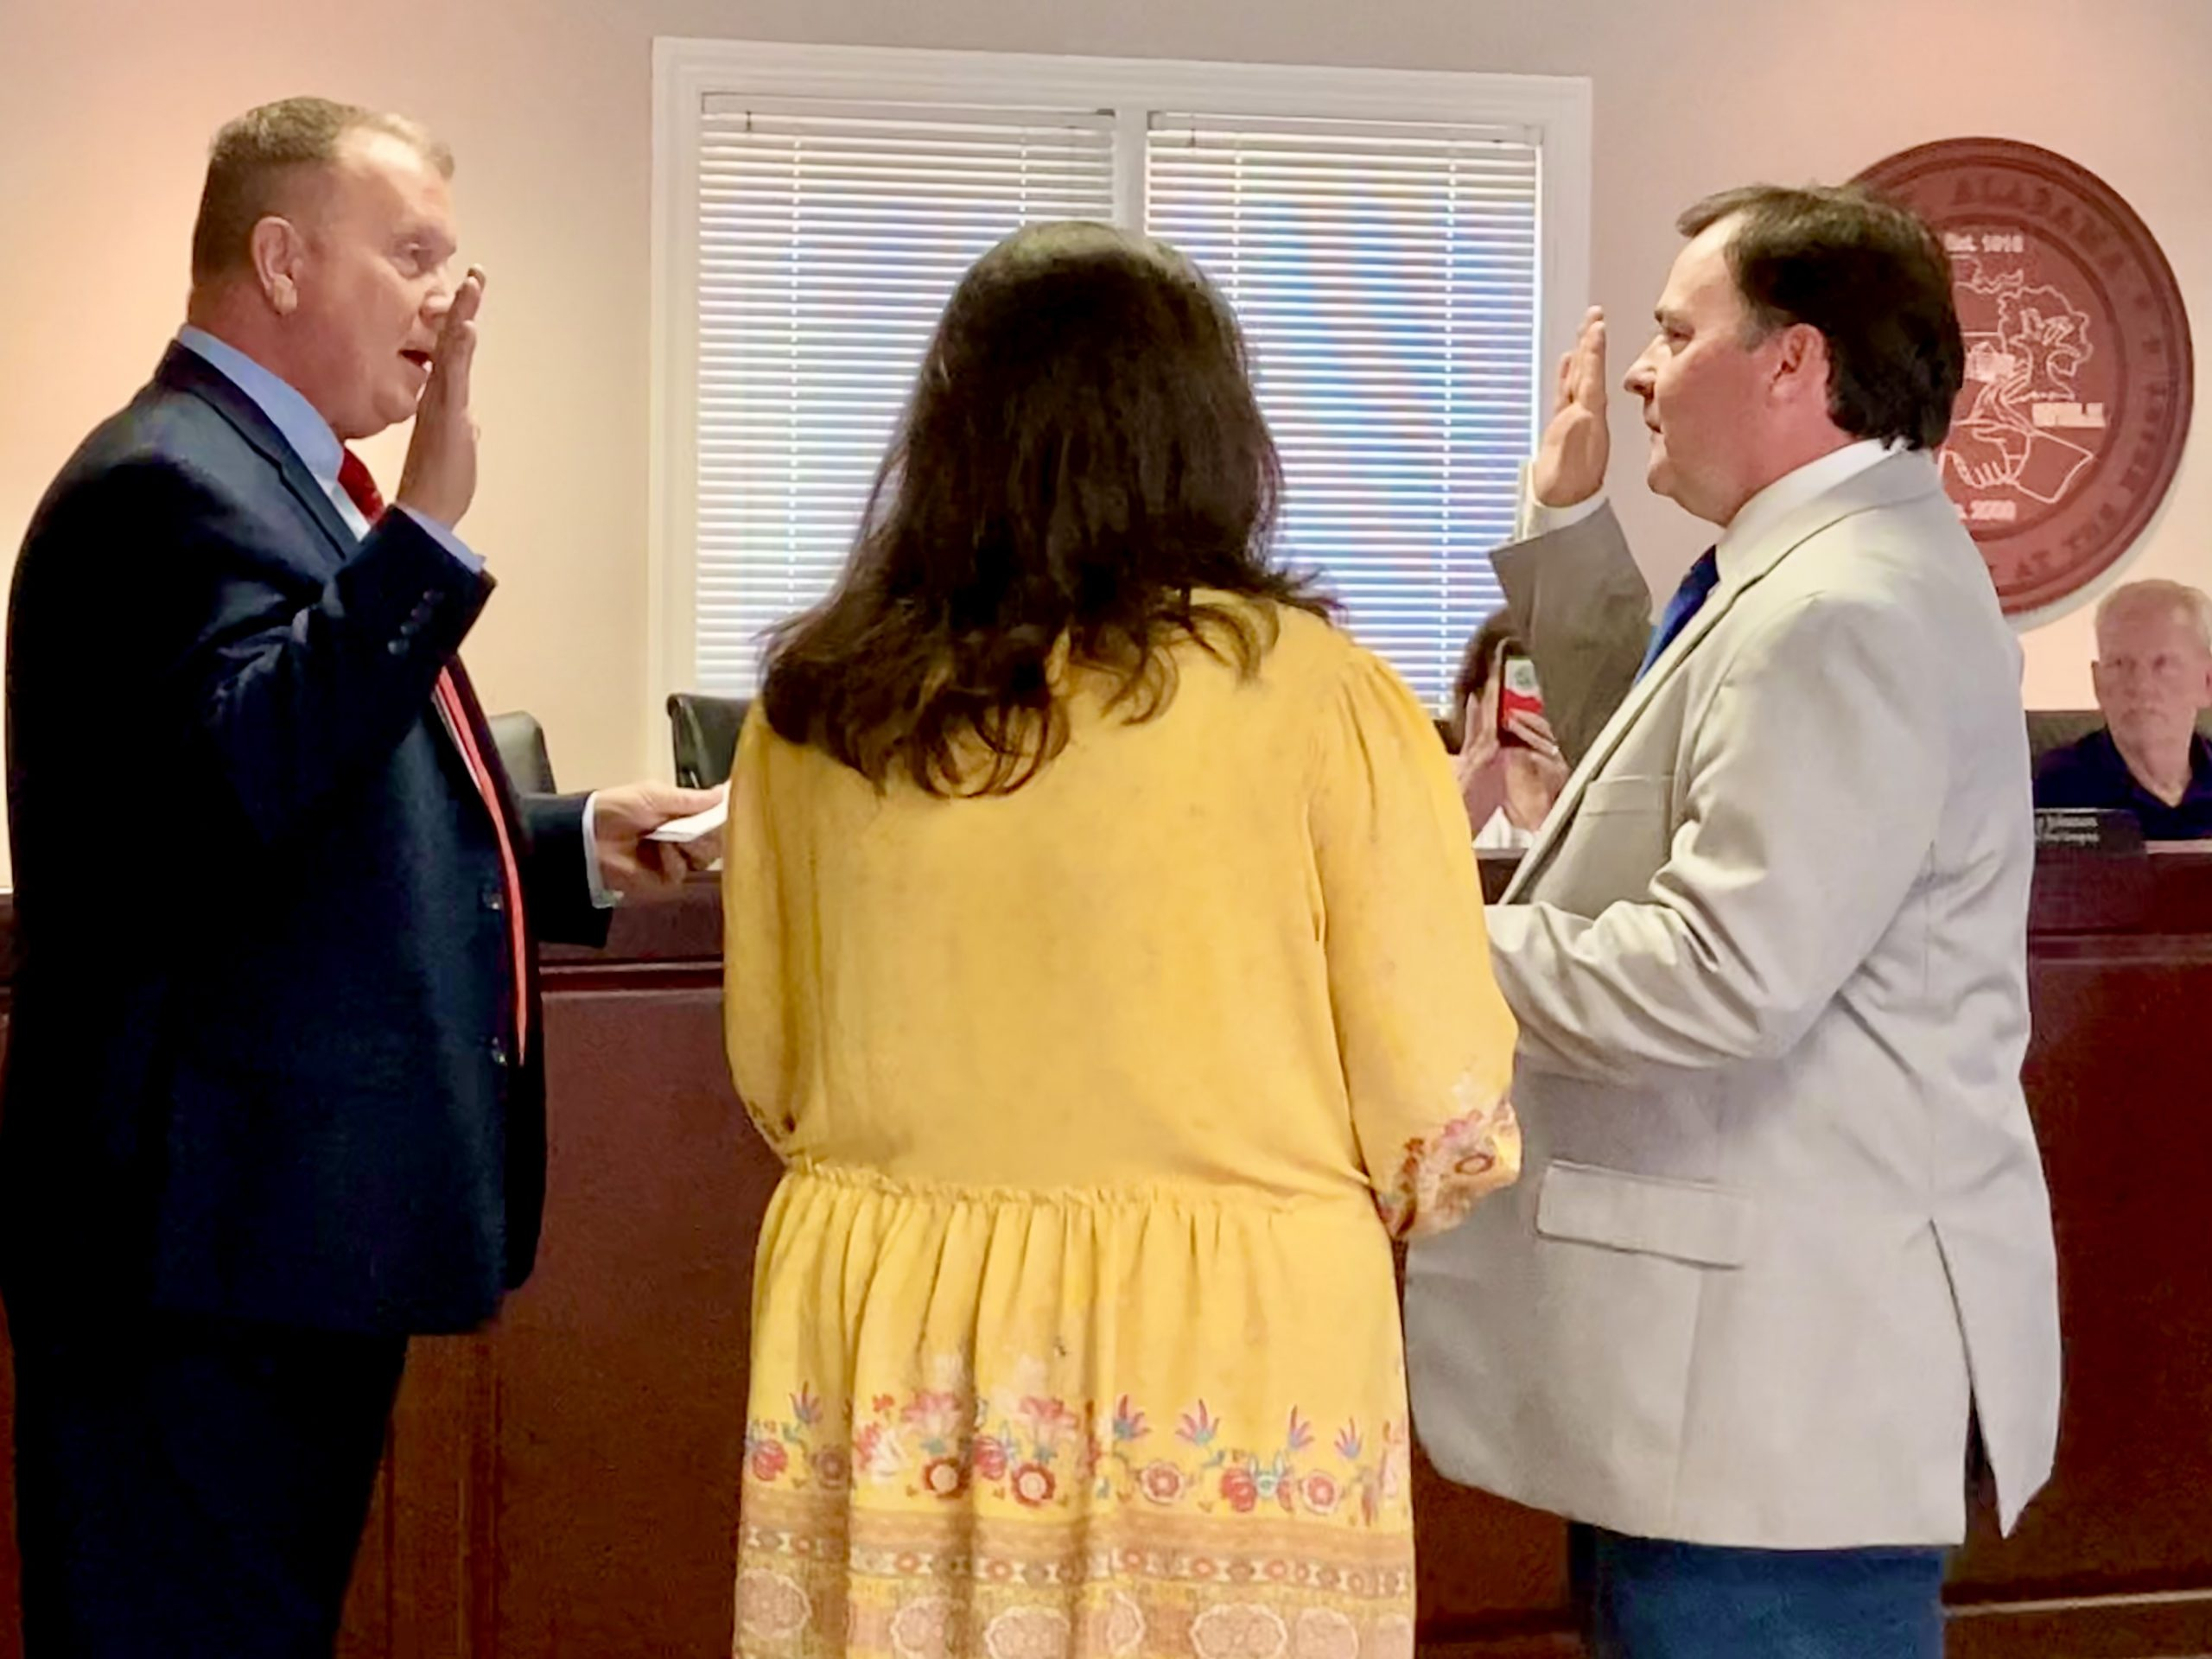 City of Clay swears in Chris Nail to Council Place 5